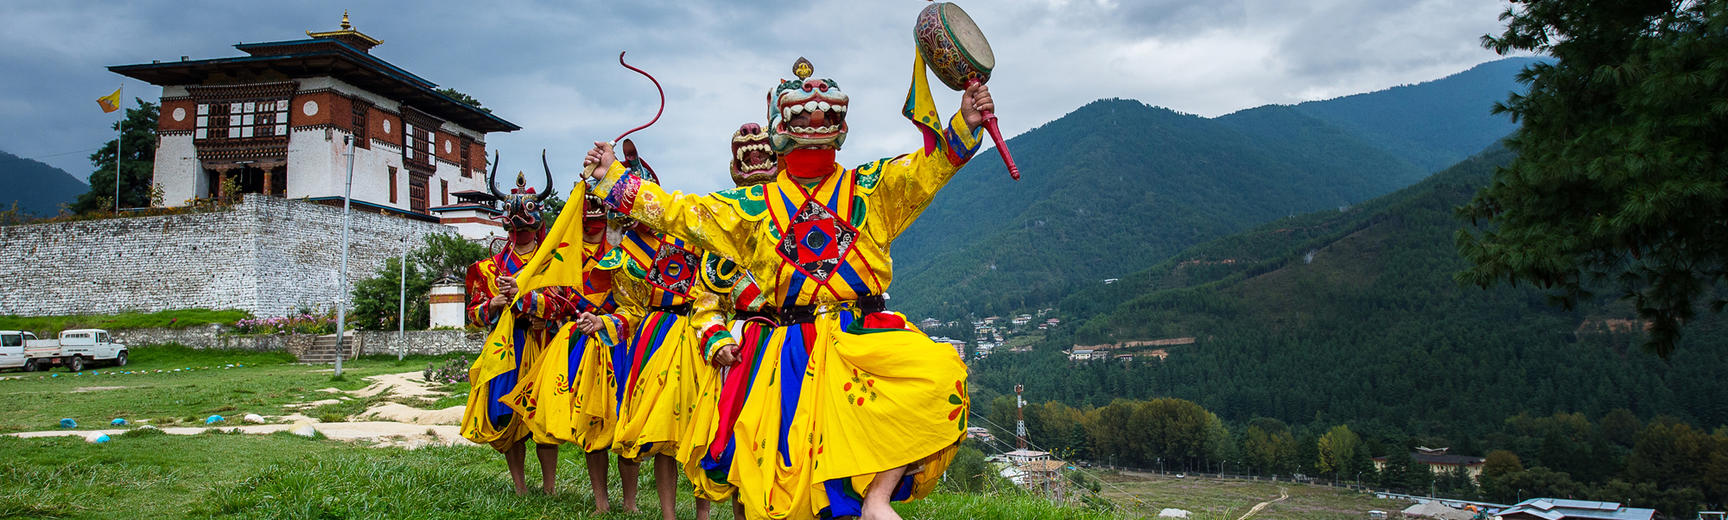 Costumed monks performing traditional dance in Tsechu festival at Thimphu Bhutan